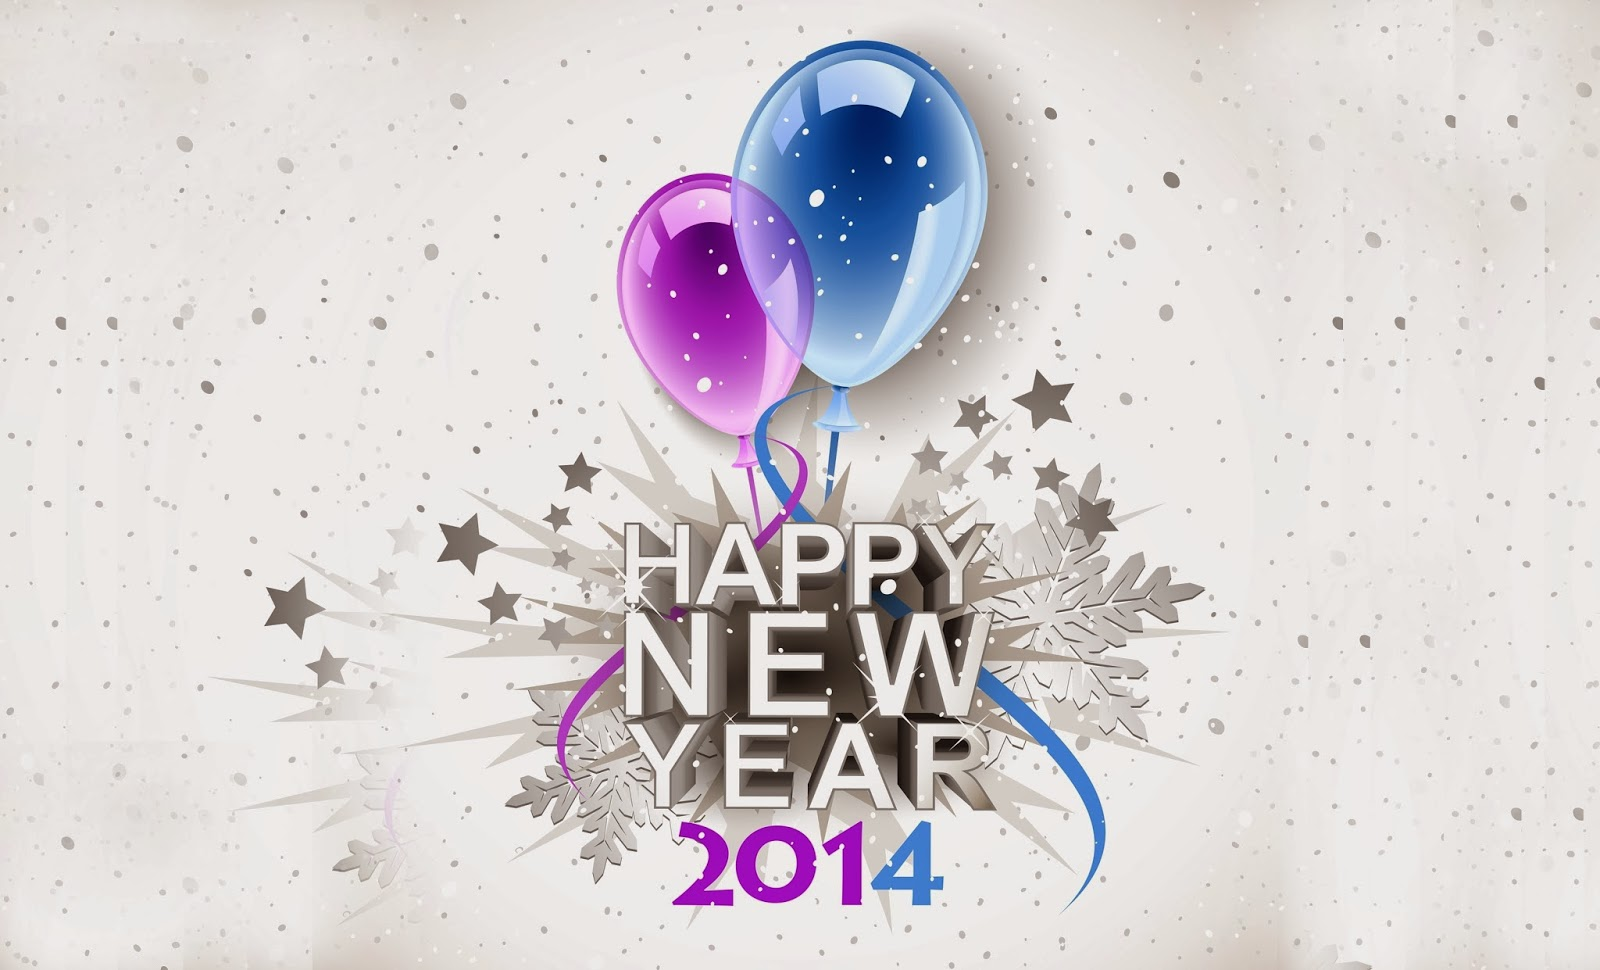 2014 Happy New Year Wallpapers Messages Quotes | ALLROUNDER